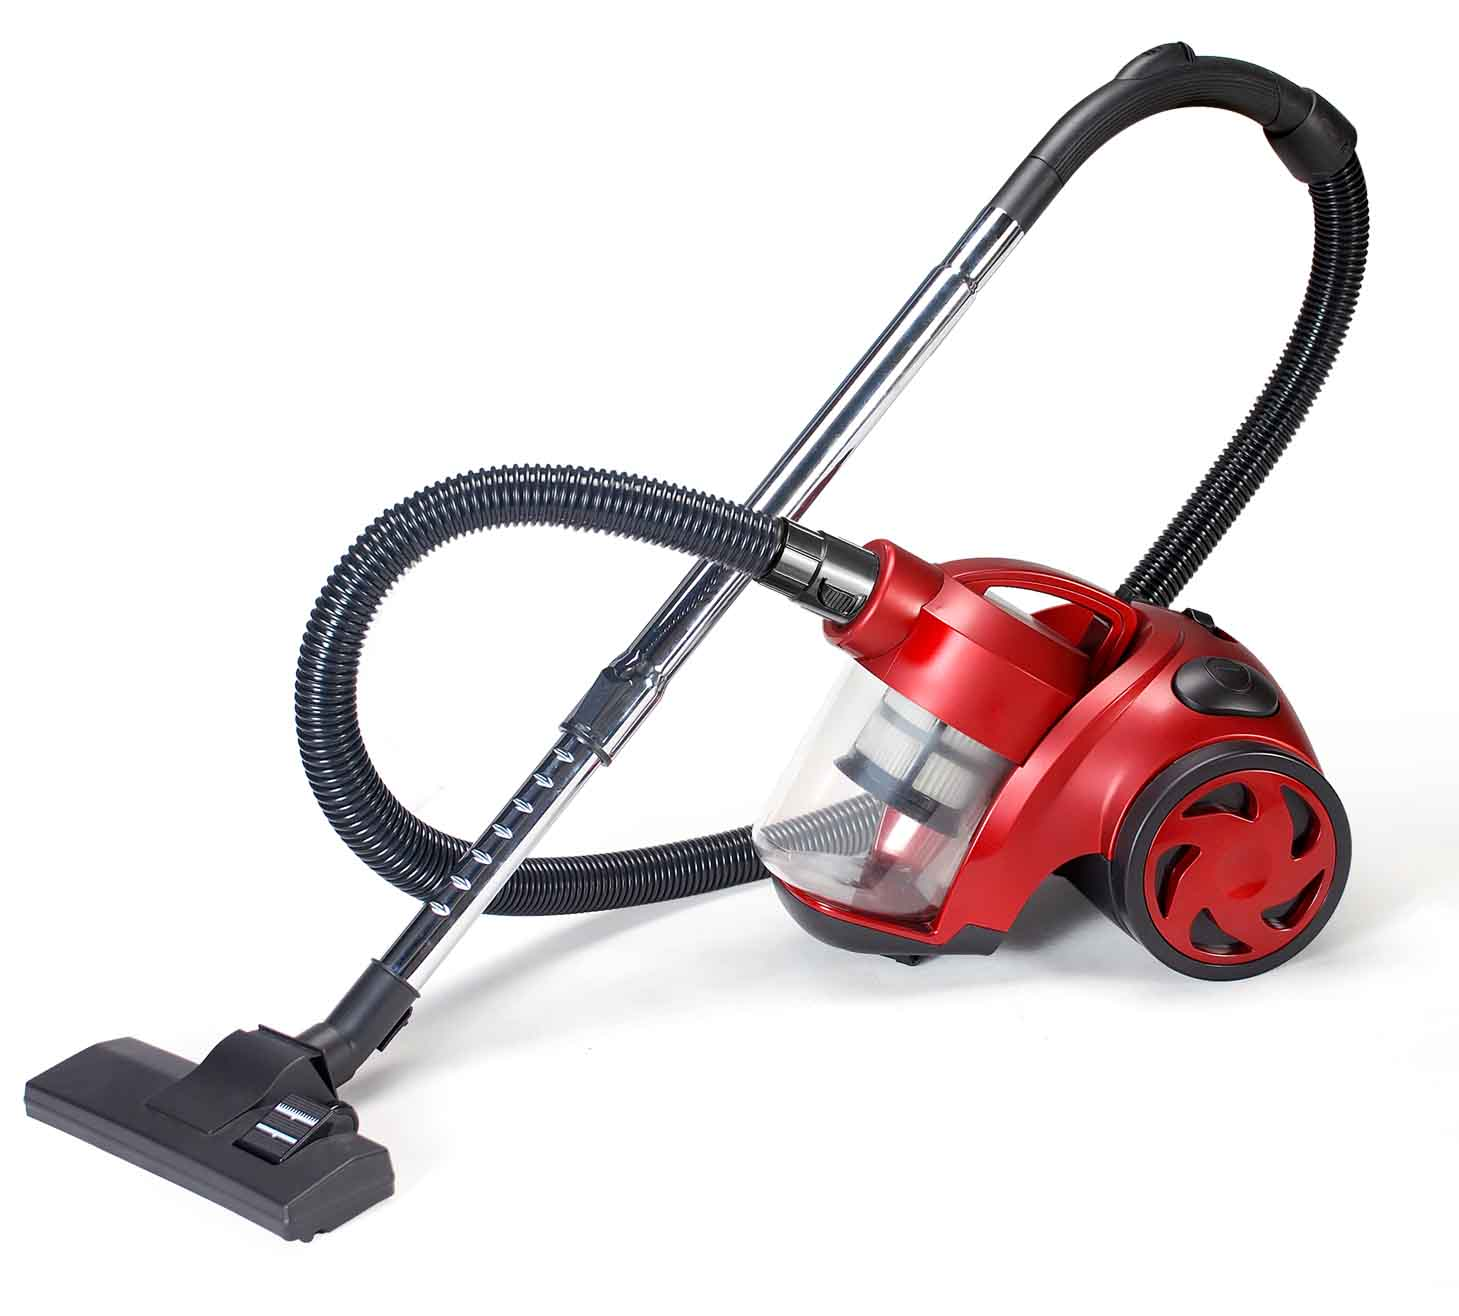 Best Vacuum Cleaner 2013: Easy Ways To Remove Carpet Stain